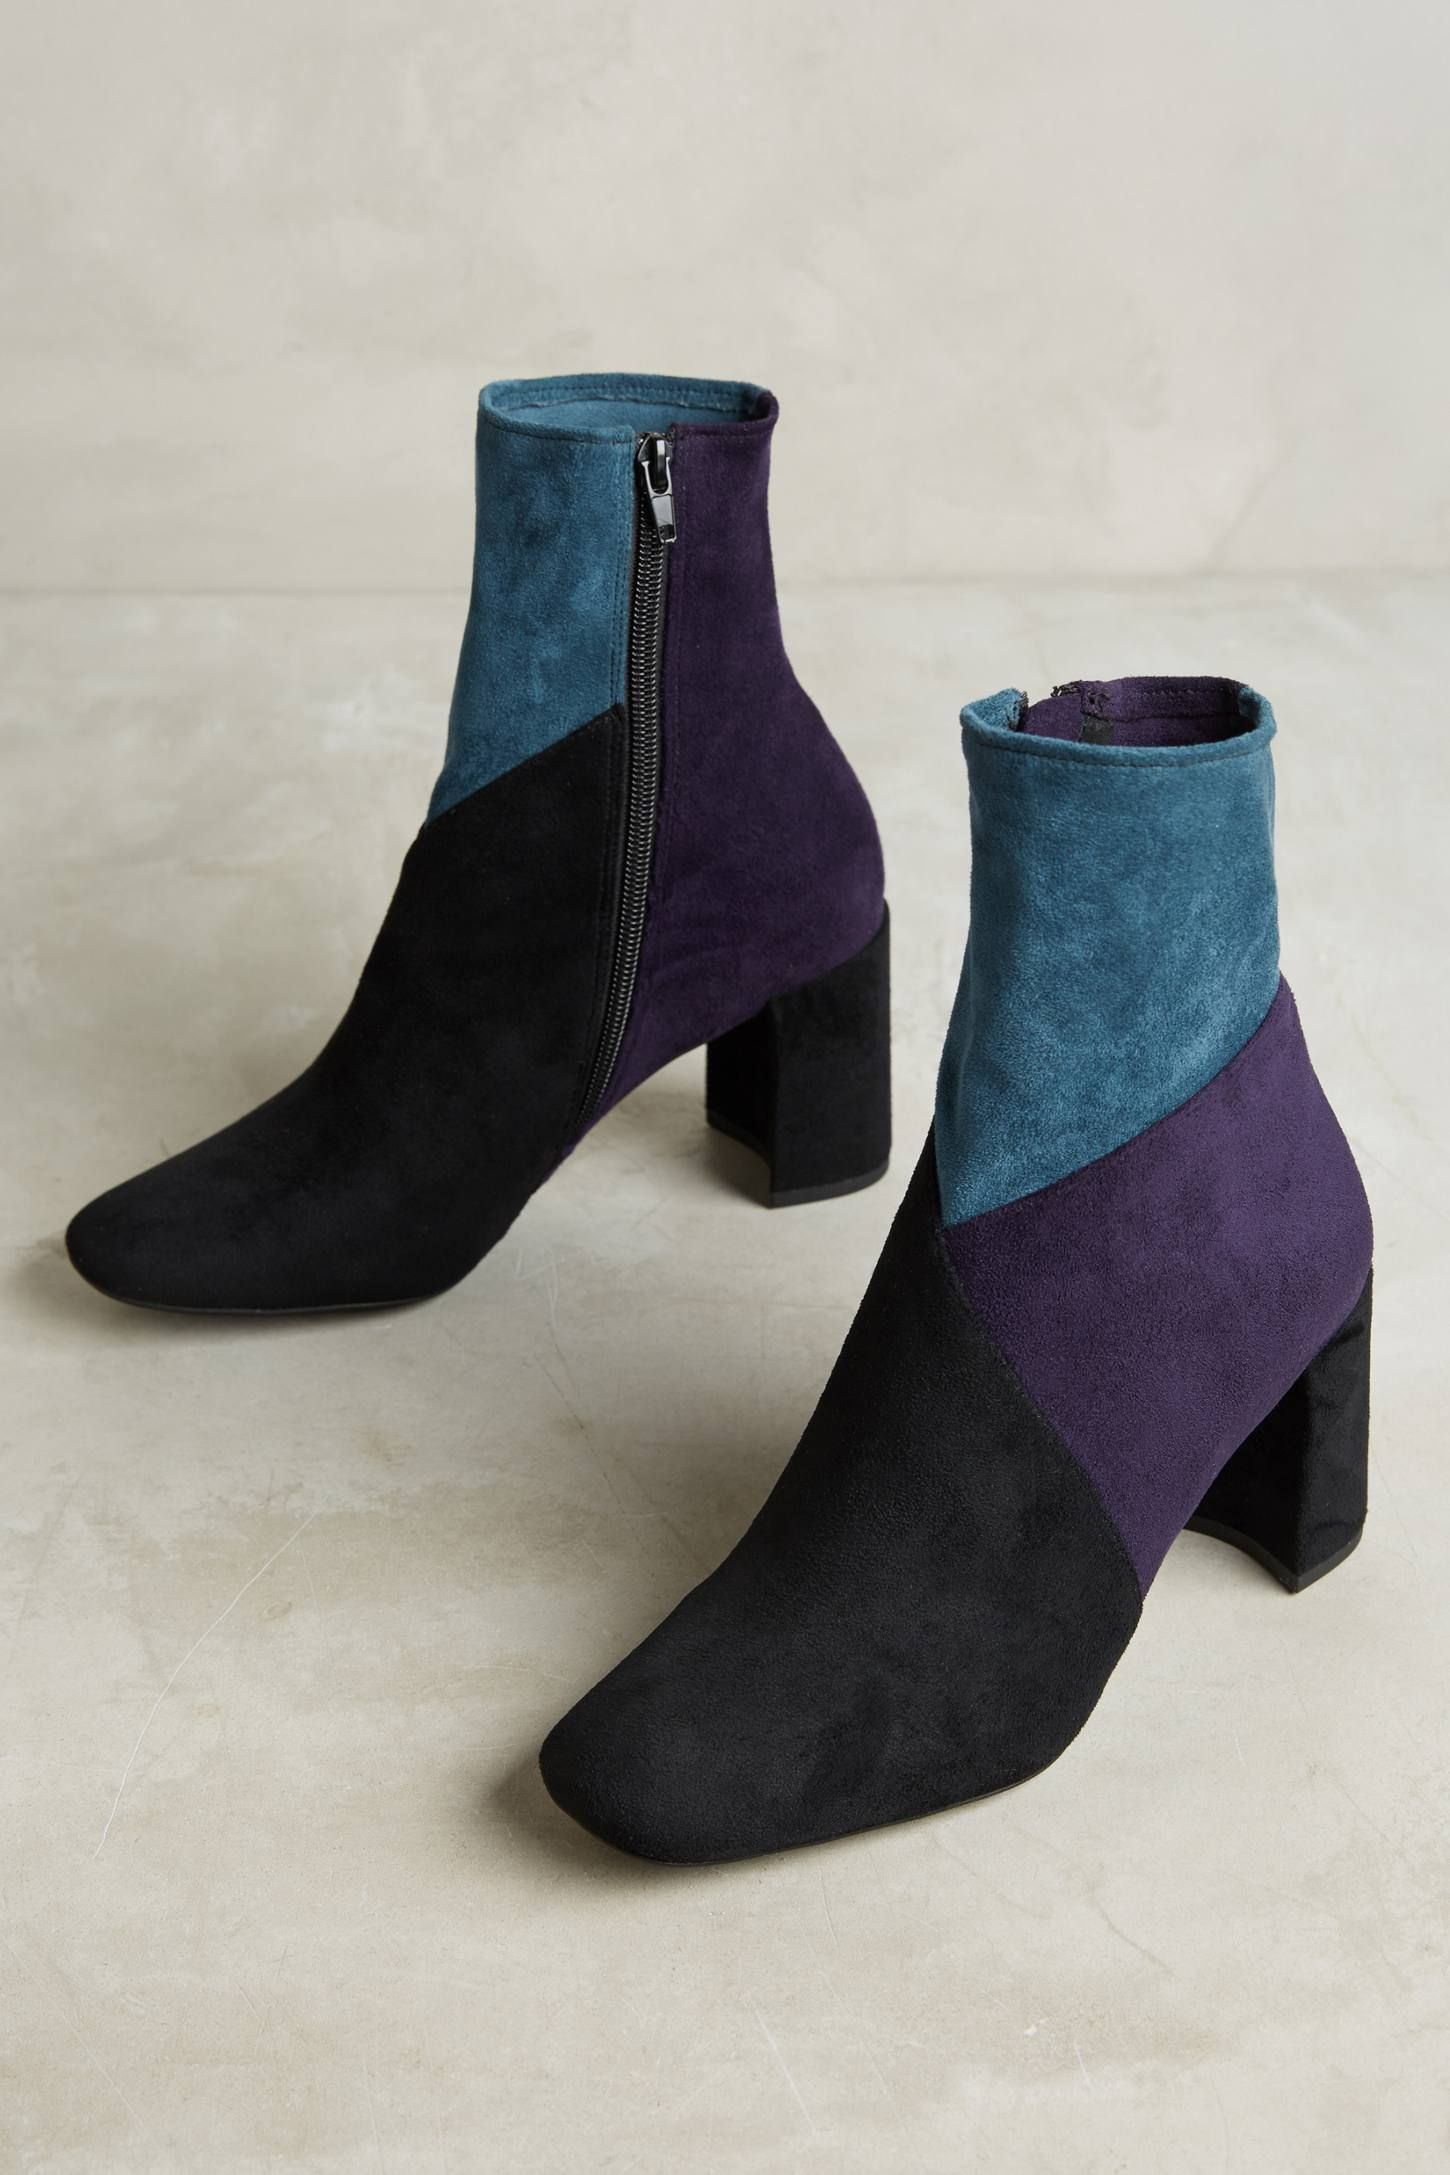 8e8e46acc486 Jeffrey Campbell Morgana Booties | Foot Wear! | Shoe boots, Boots ...